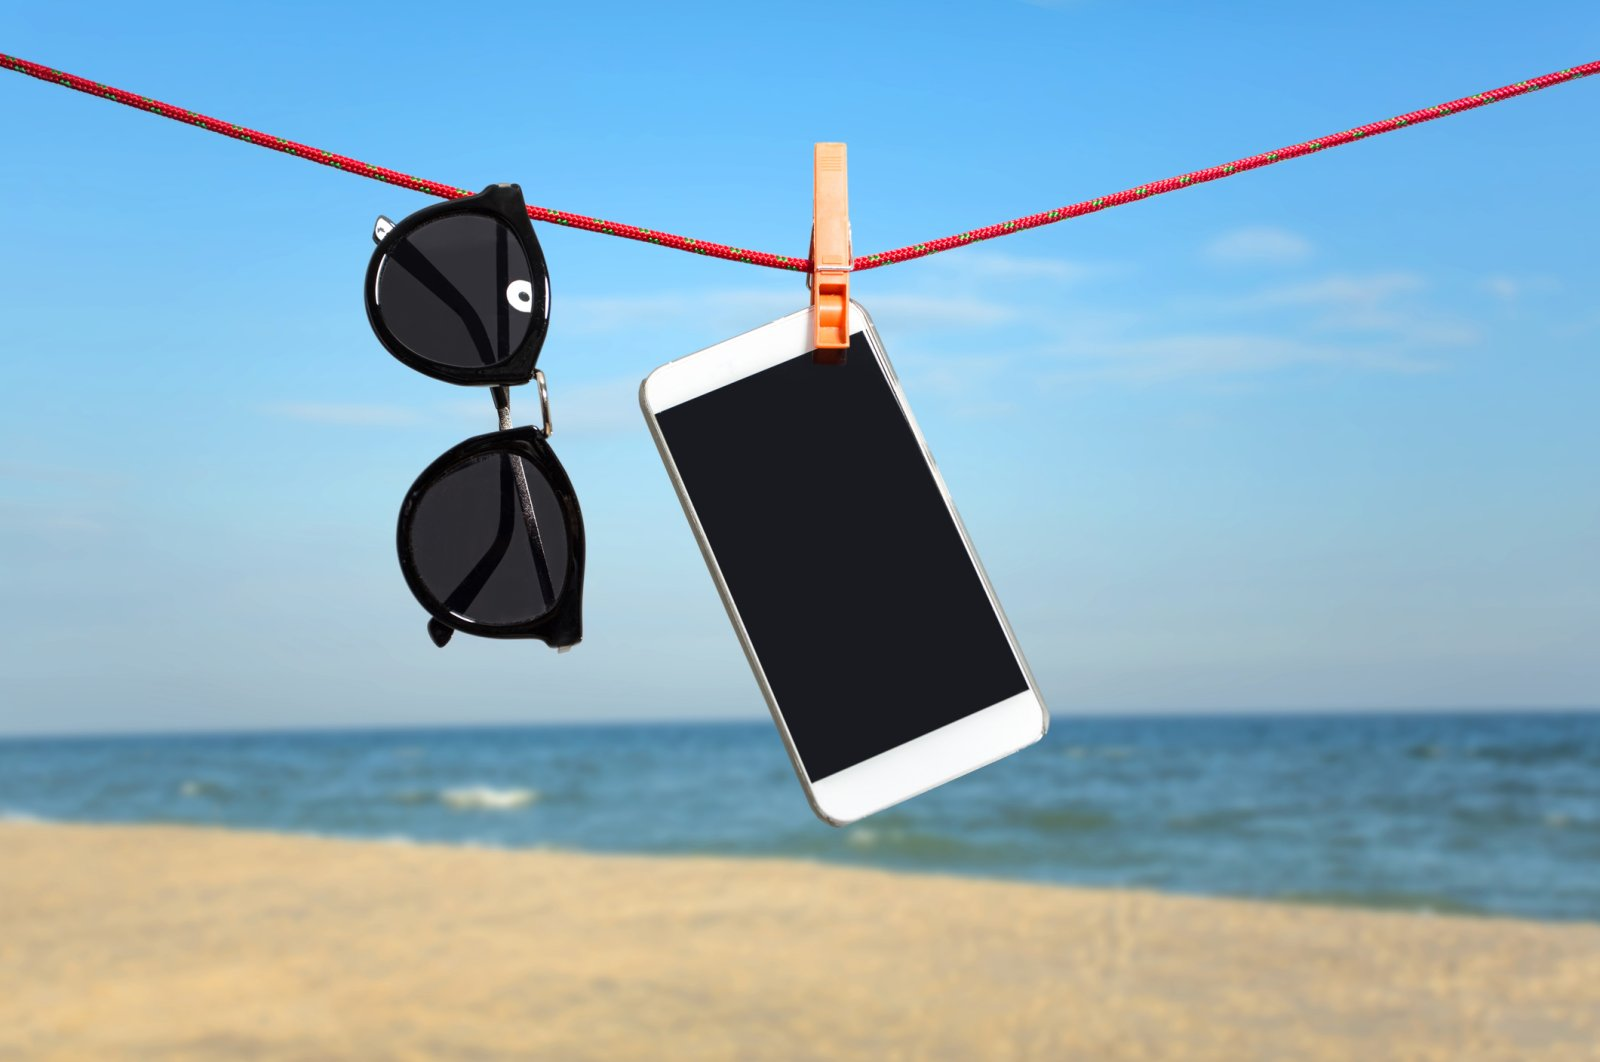 With a little luck and fast action, your smartphone may survive its brush with death. (iStock Photo)